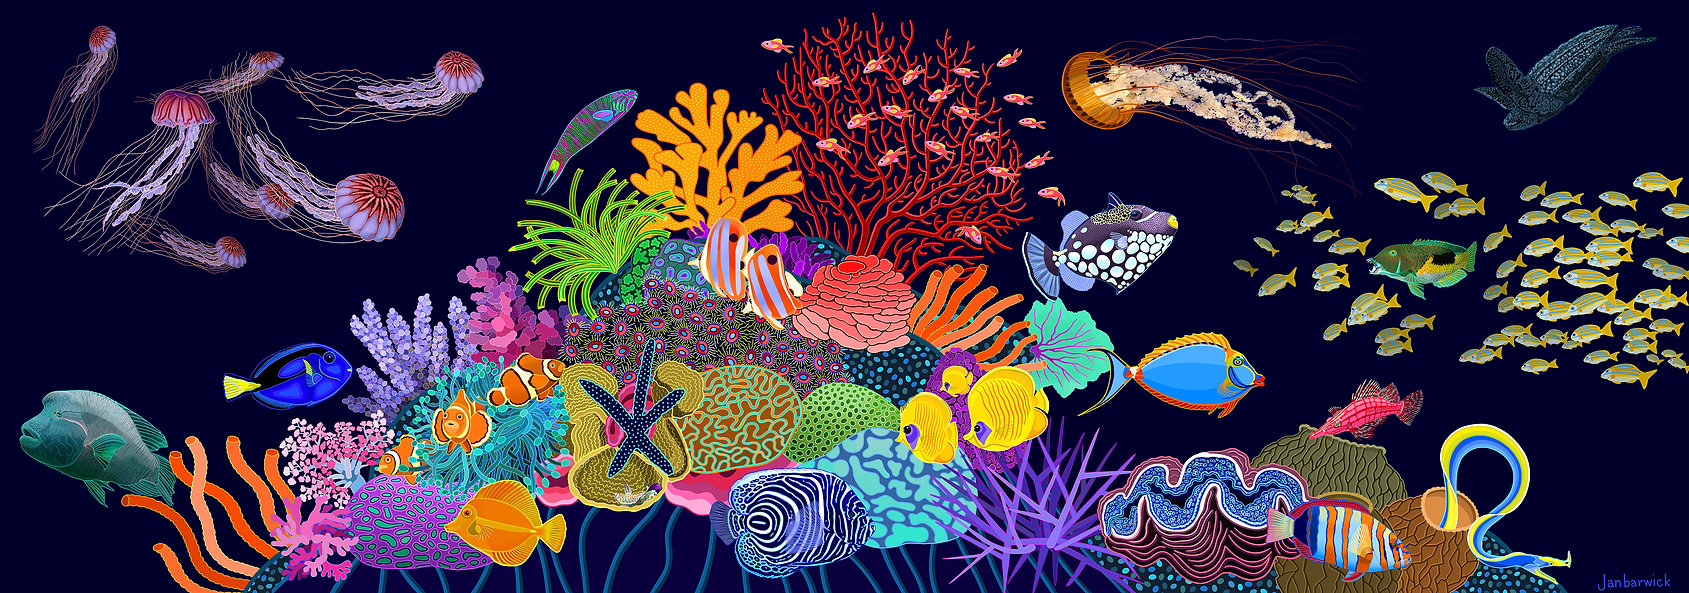 Great Barrier Reef2 .jpg